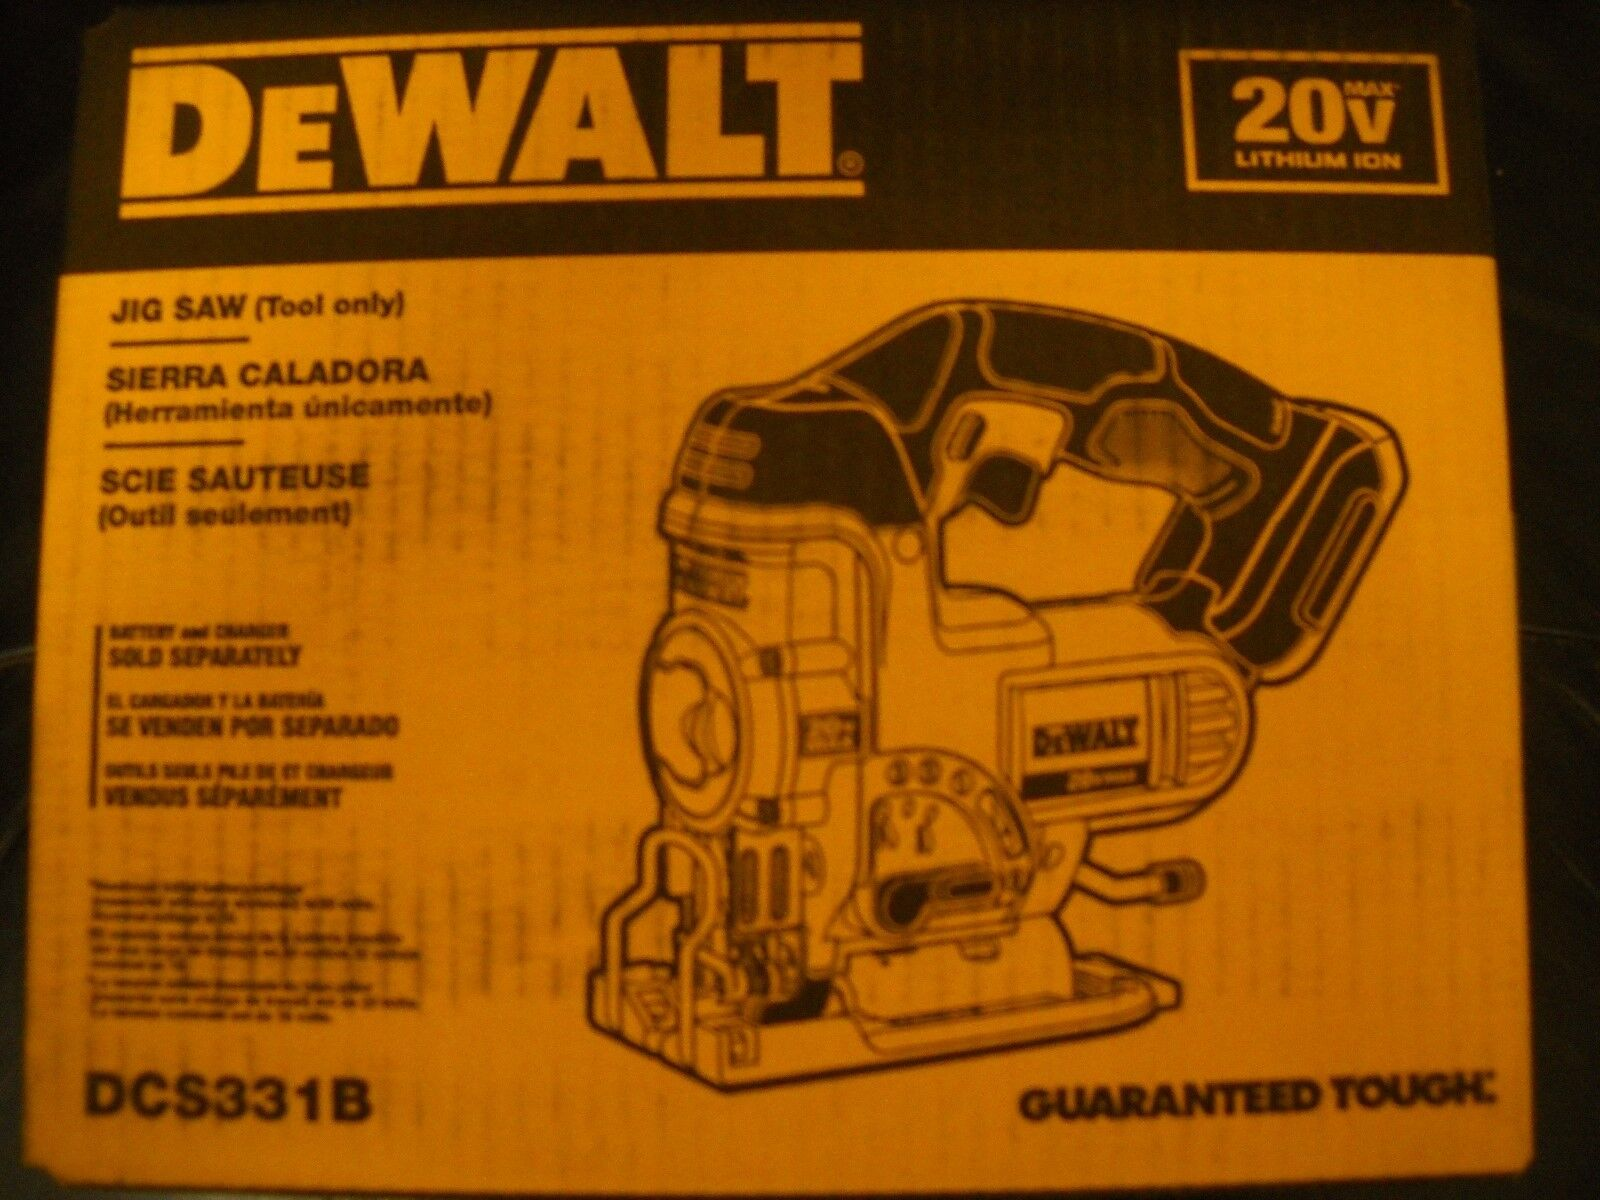 DeWALT DCS331B 20V 20 Volt Max Lithium-Ion Cordless Jig Saw Tool New in Box